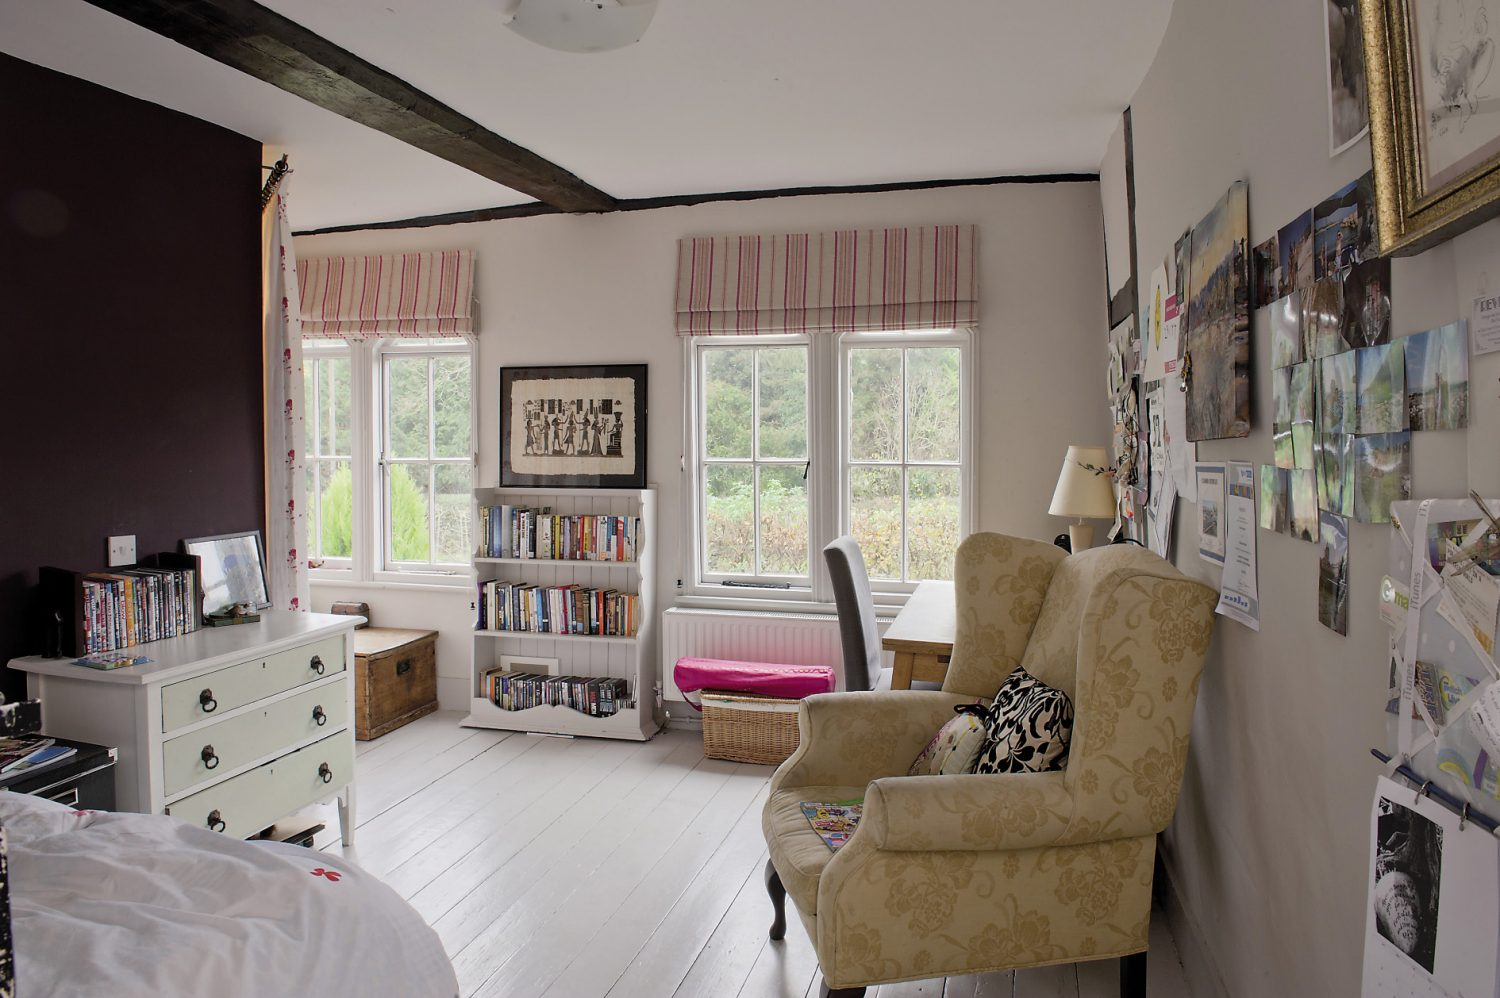 17-year-old daughter Chloë's light bright room features white painted floors and furniture. Behind a white and rose print curtain hides her own bathroom...